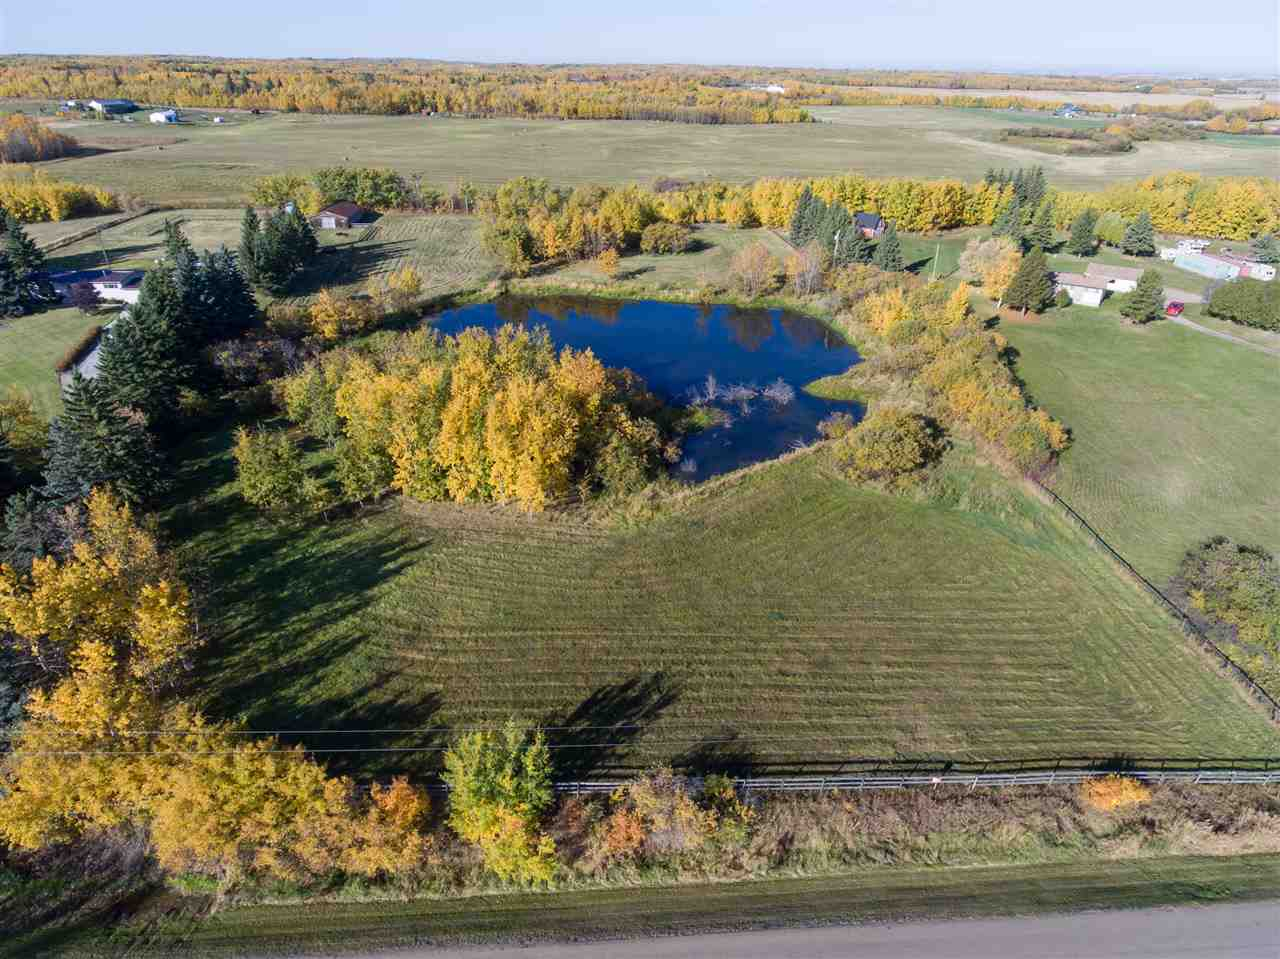 3.64 ACRES UNDEVELOPED....POSSIBLE LOCATION FOR WALKOUT BASEMENT HOME... UTILITIES AT PROPERTY LINE. This gorgeous parcel of land provides fencing on 3 sides of the property, originally set up for horses, therefore no barb wire. A must see!